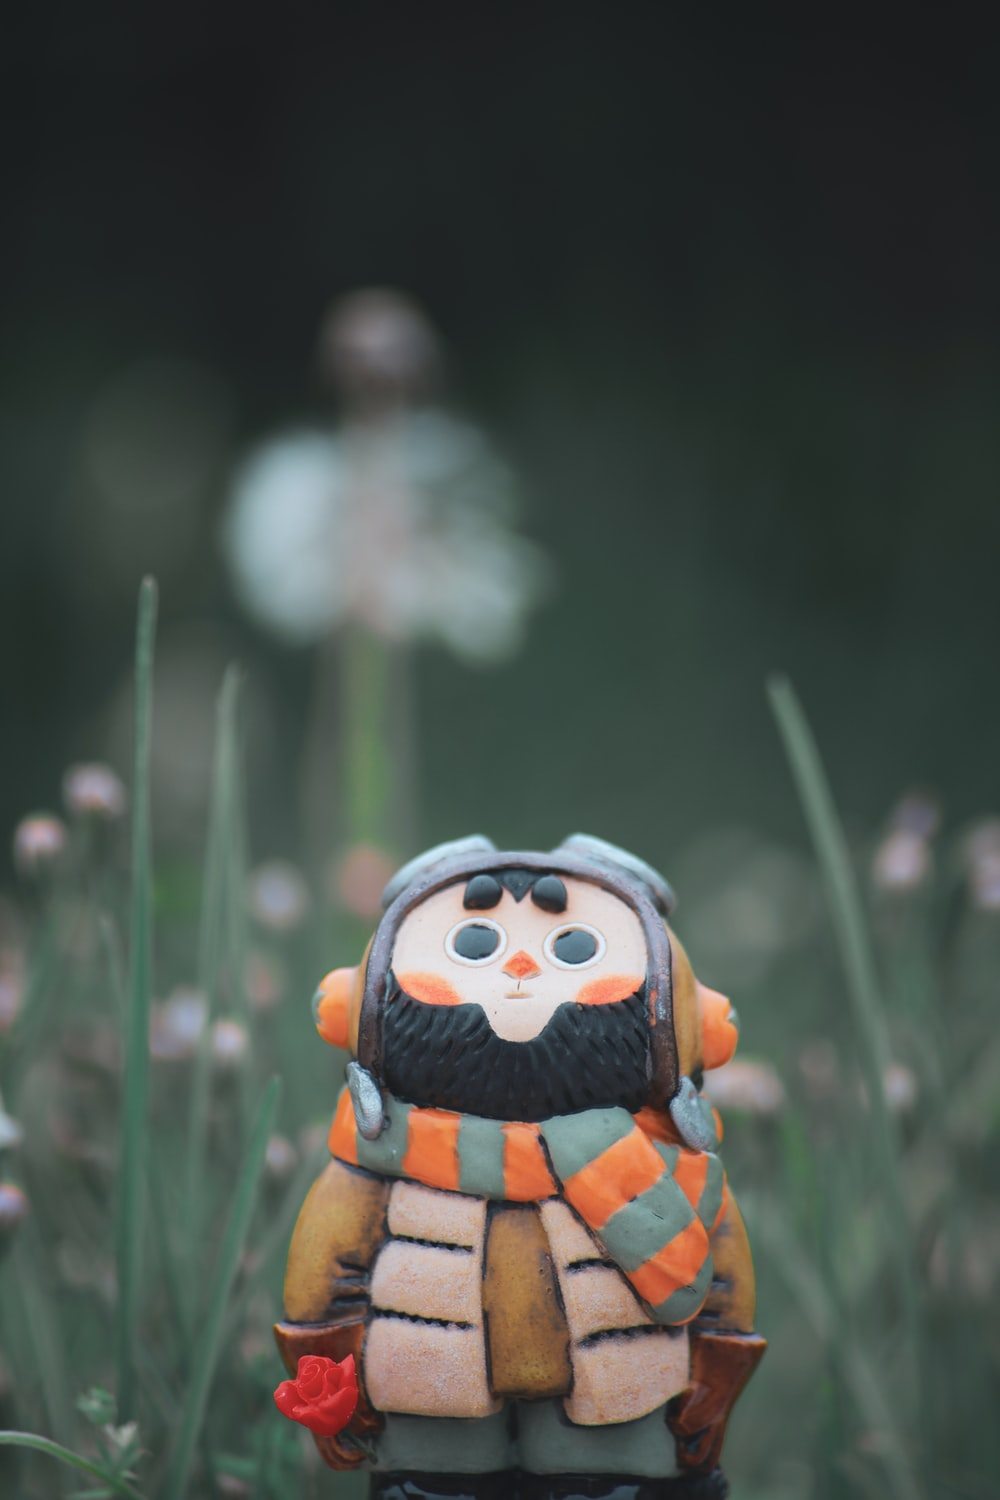 orange and black lego toy on green grass